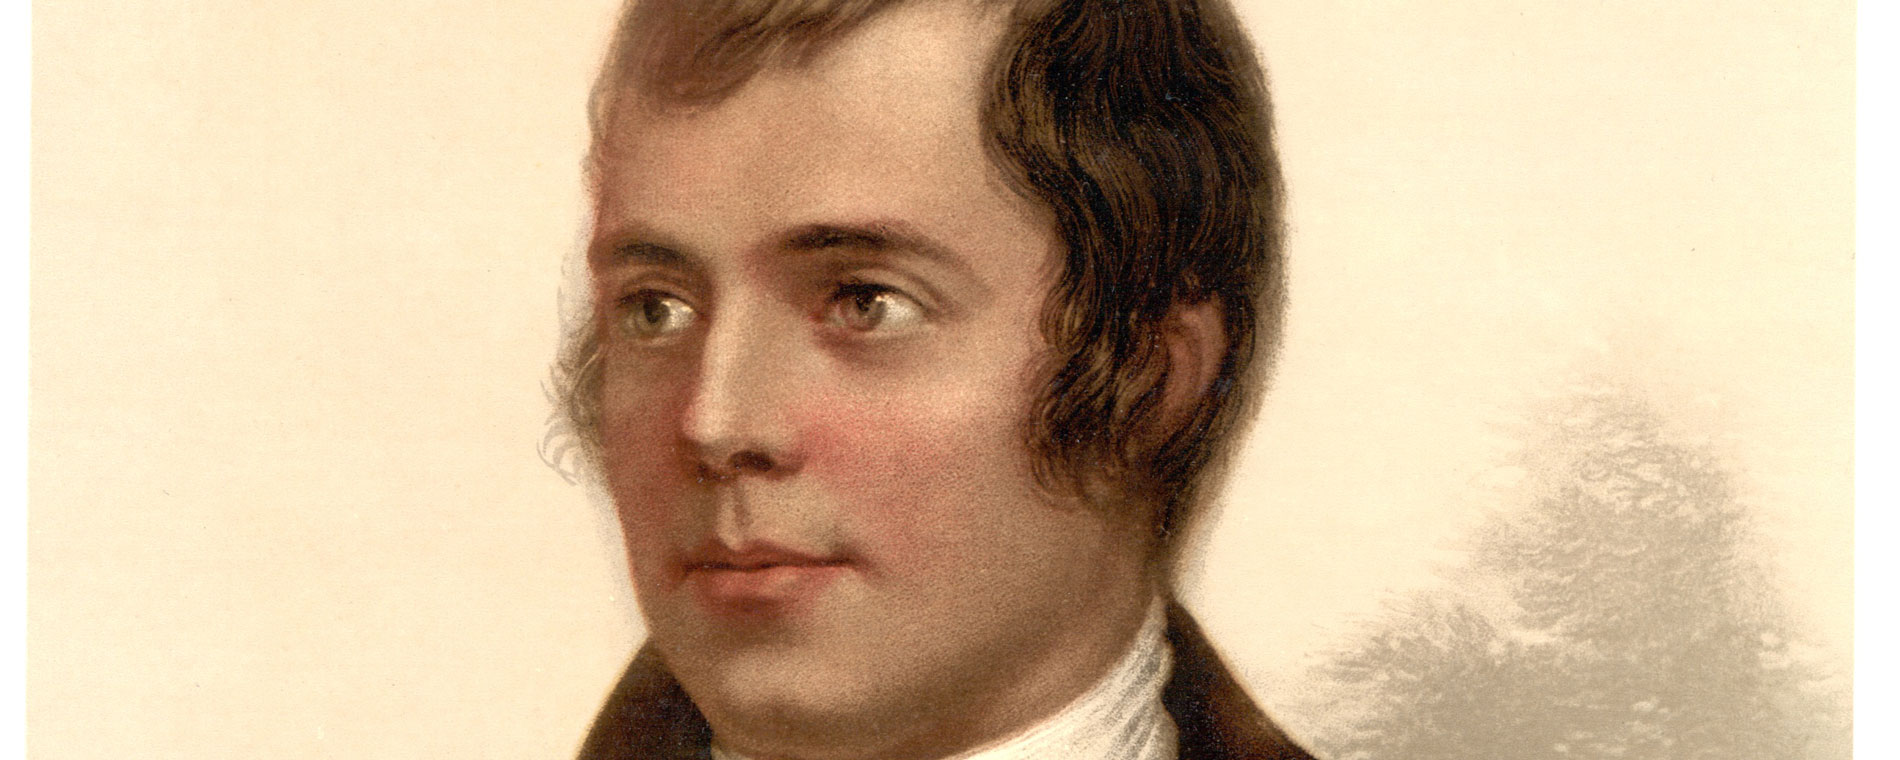 Robert Burns photo #3757, Robert Burns image